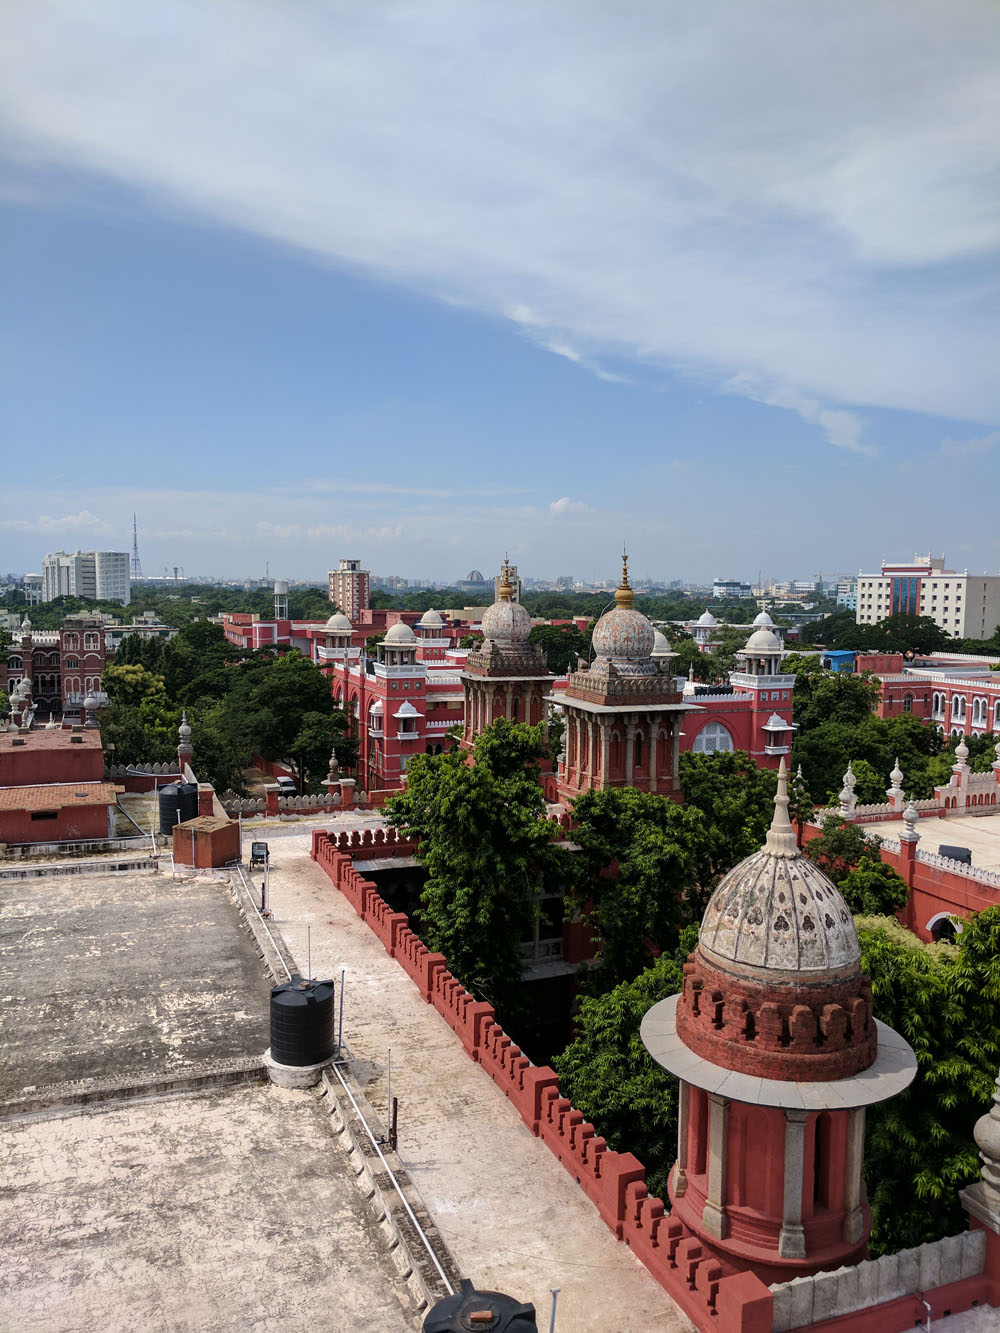 Aeriel view of the High Court of Madras